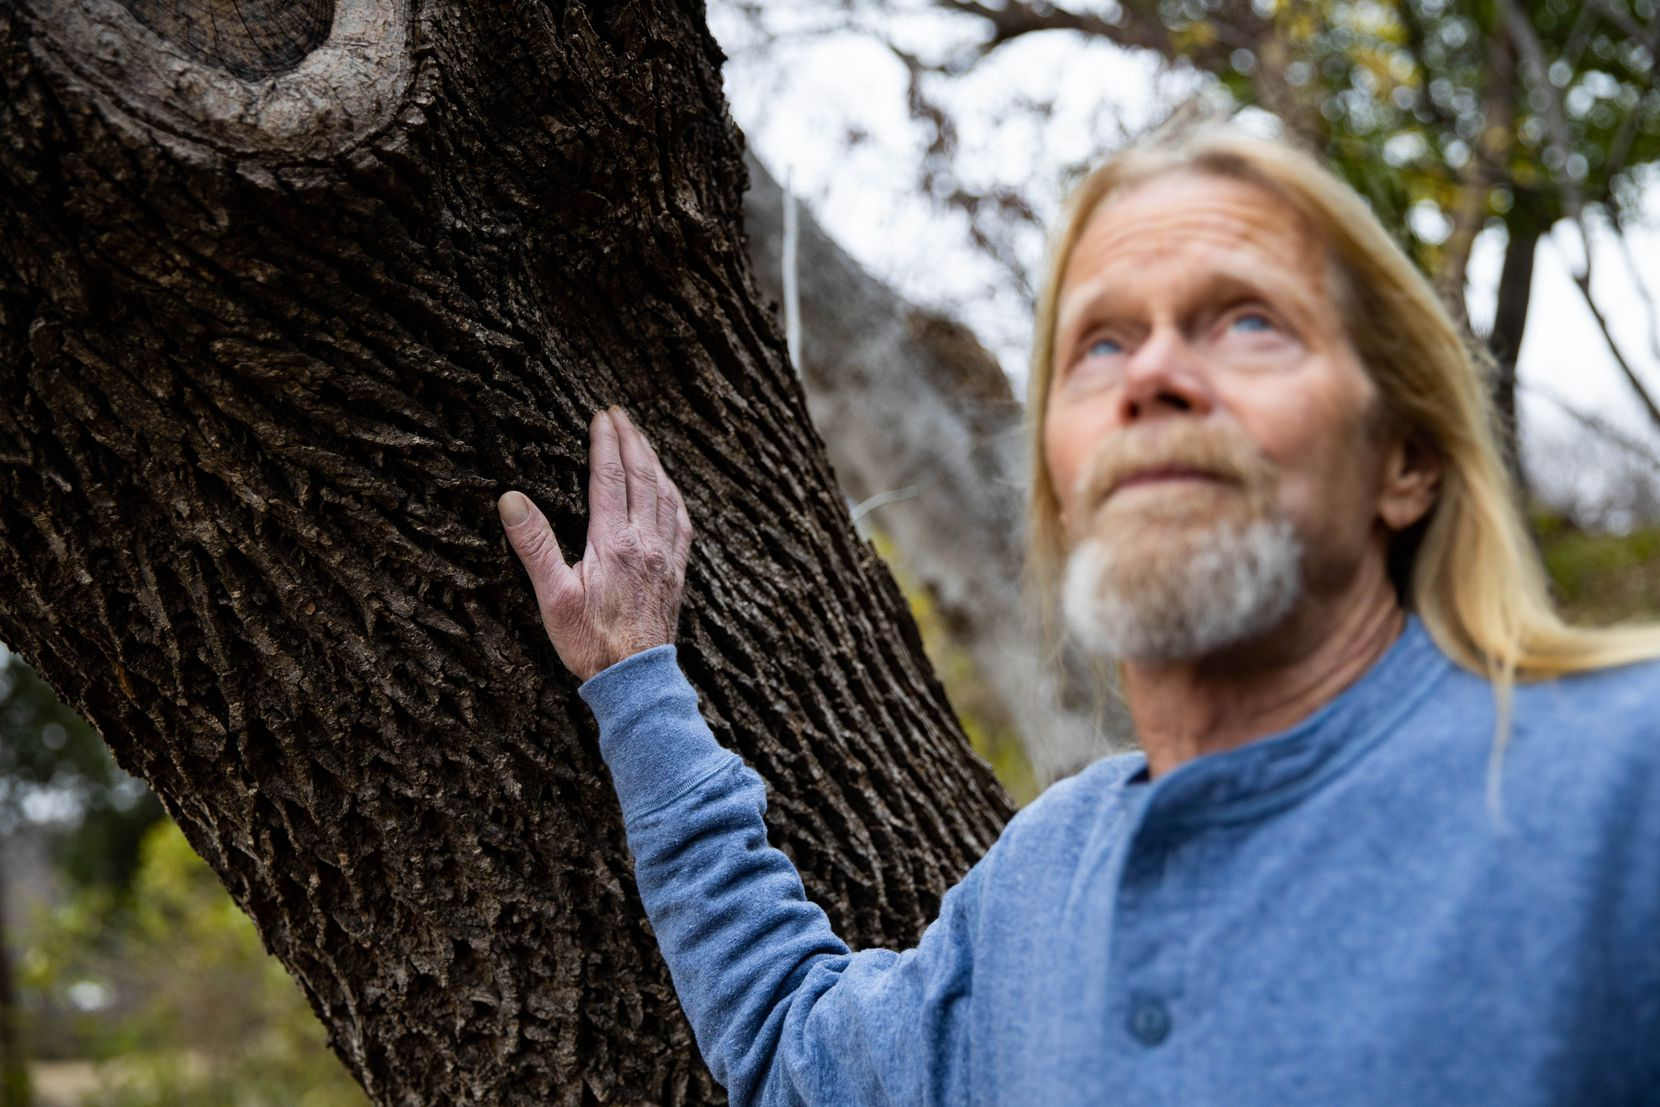 Steve Houser, a certified arborist, looks up at an ash tree at Reverchon Park in Dallas. Houser is calling attention to the emerald ash borer, which kills ash trees and was recently confirmed in Fort Worth and Denton. Research shows it could soon be in Dallas.